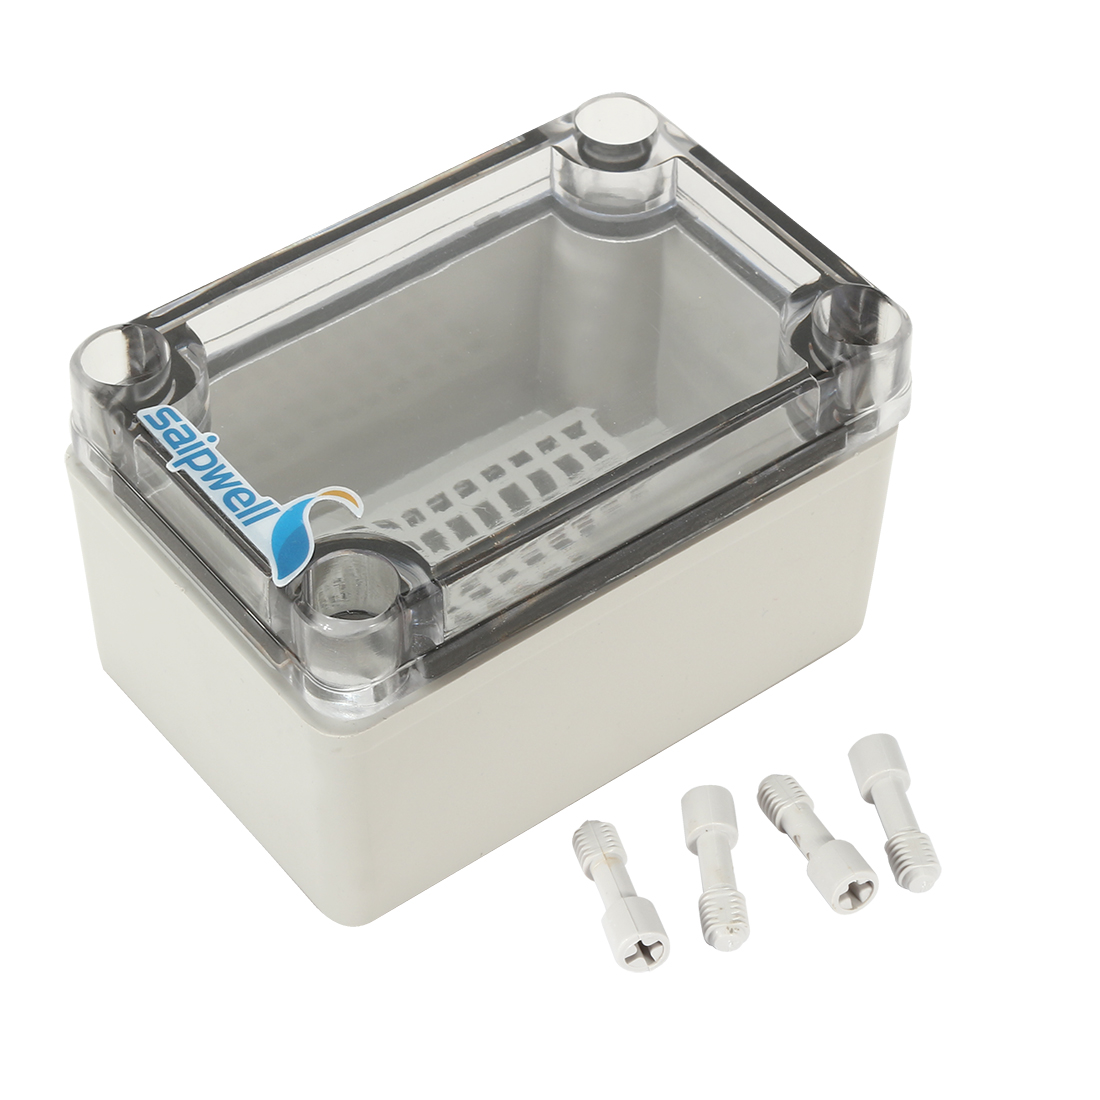 "2.6""x3.7""x2.2""(65mmx95mmx55mm) ABS Junction Box Universal Project Enclosure w PC Transparent Cover"